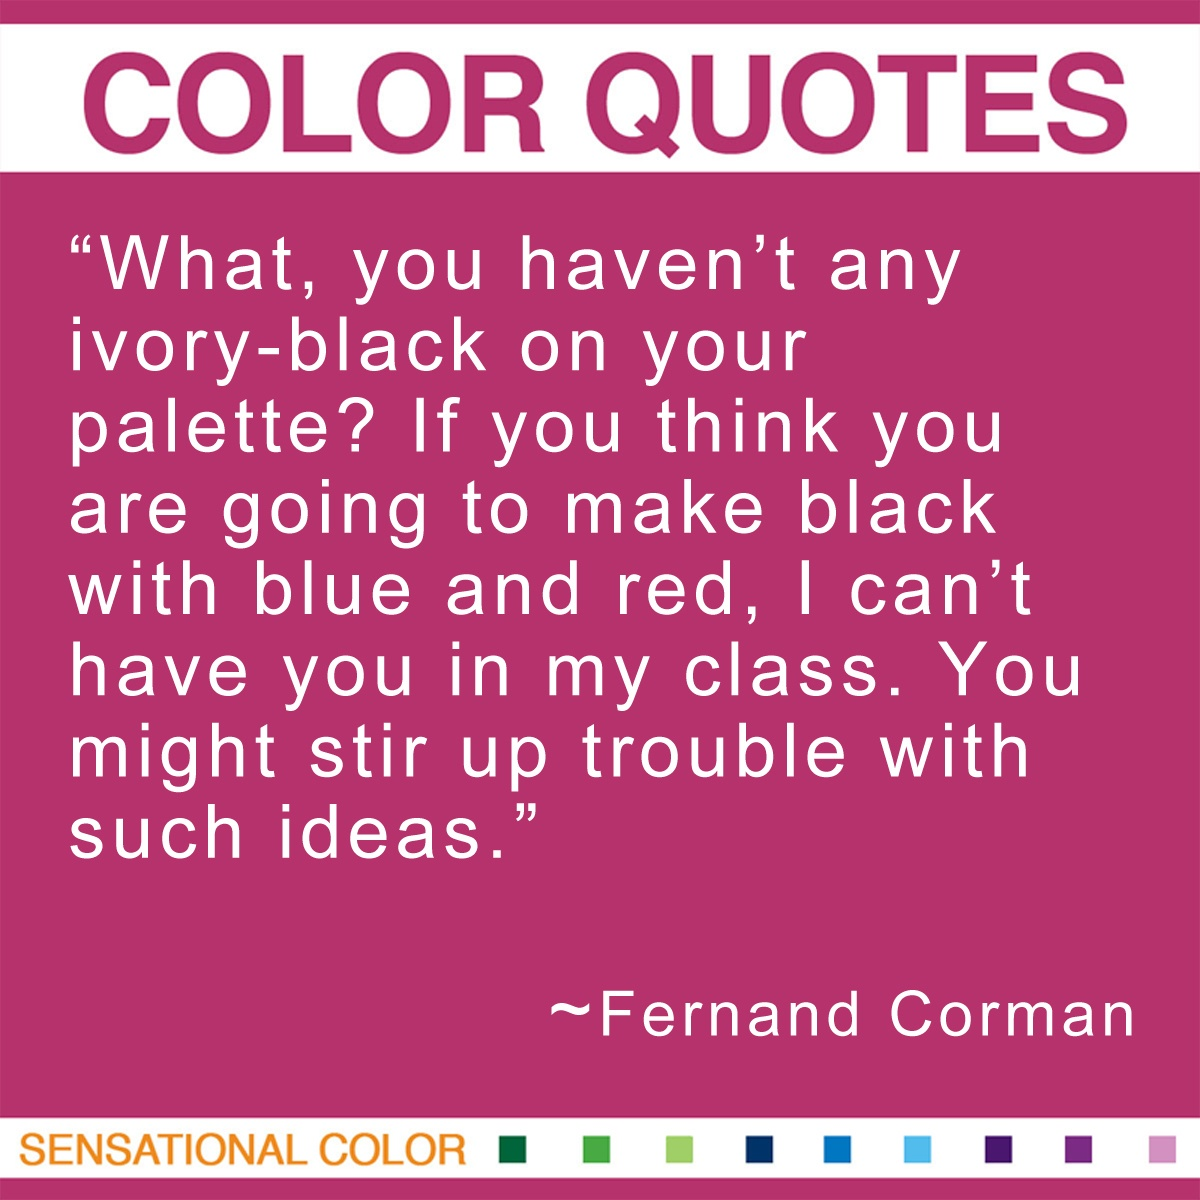 """What, you haven't any ivory-black on your palette? If you think you are going to make black with blue and red, I can't have you in my class. You might stir up trouble with such ideas."" - Fernand Cormon"